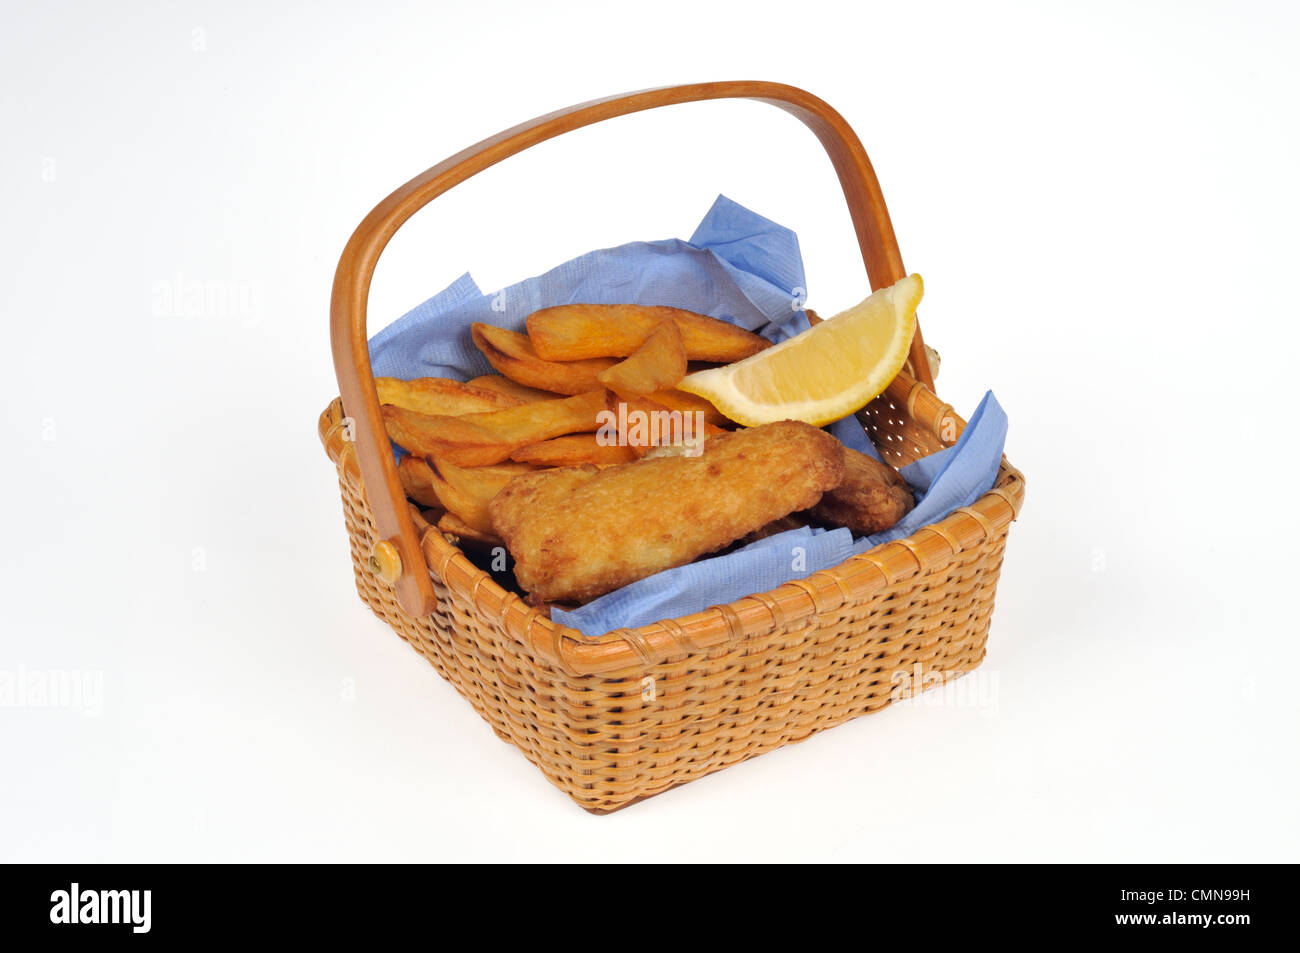 Basket of fried fish and chips with lemon wedge - Stock Image